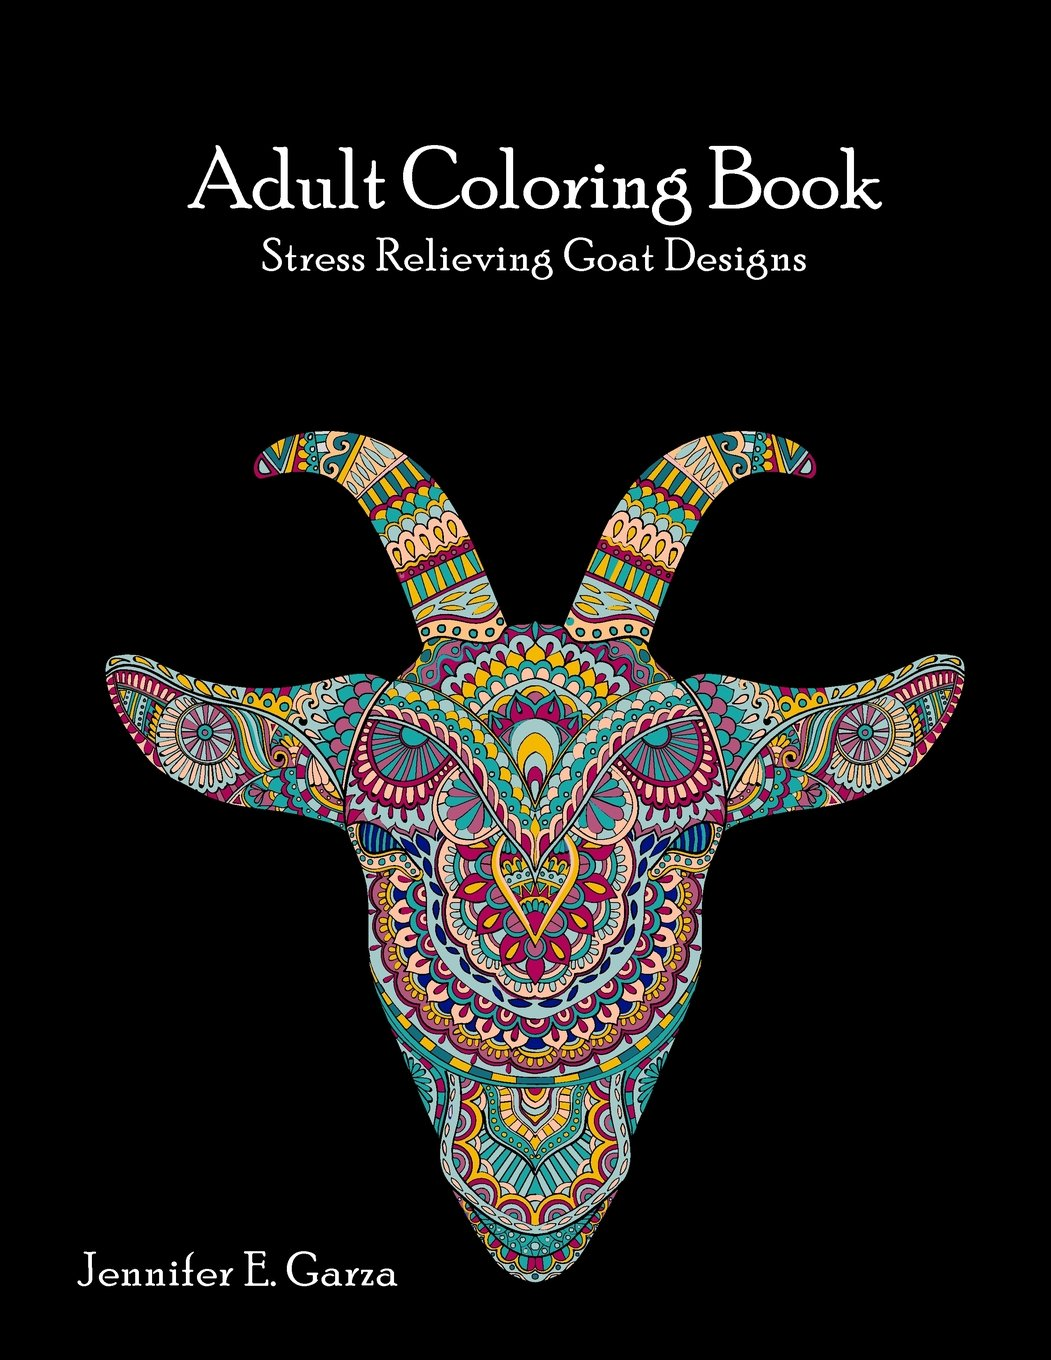 Download Goats Adult Coloring Book: Stress Relieving Goat Designs ePub fb2 book